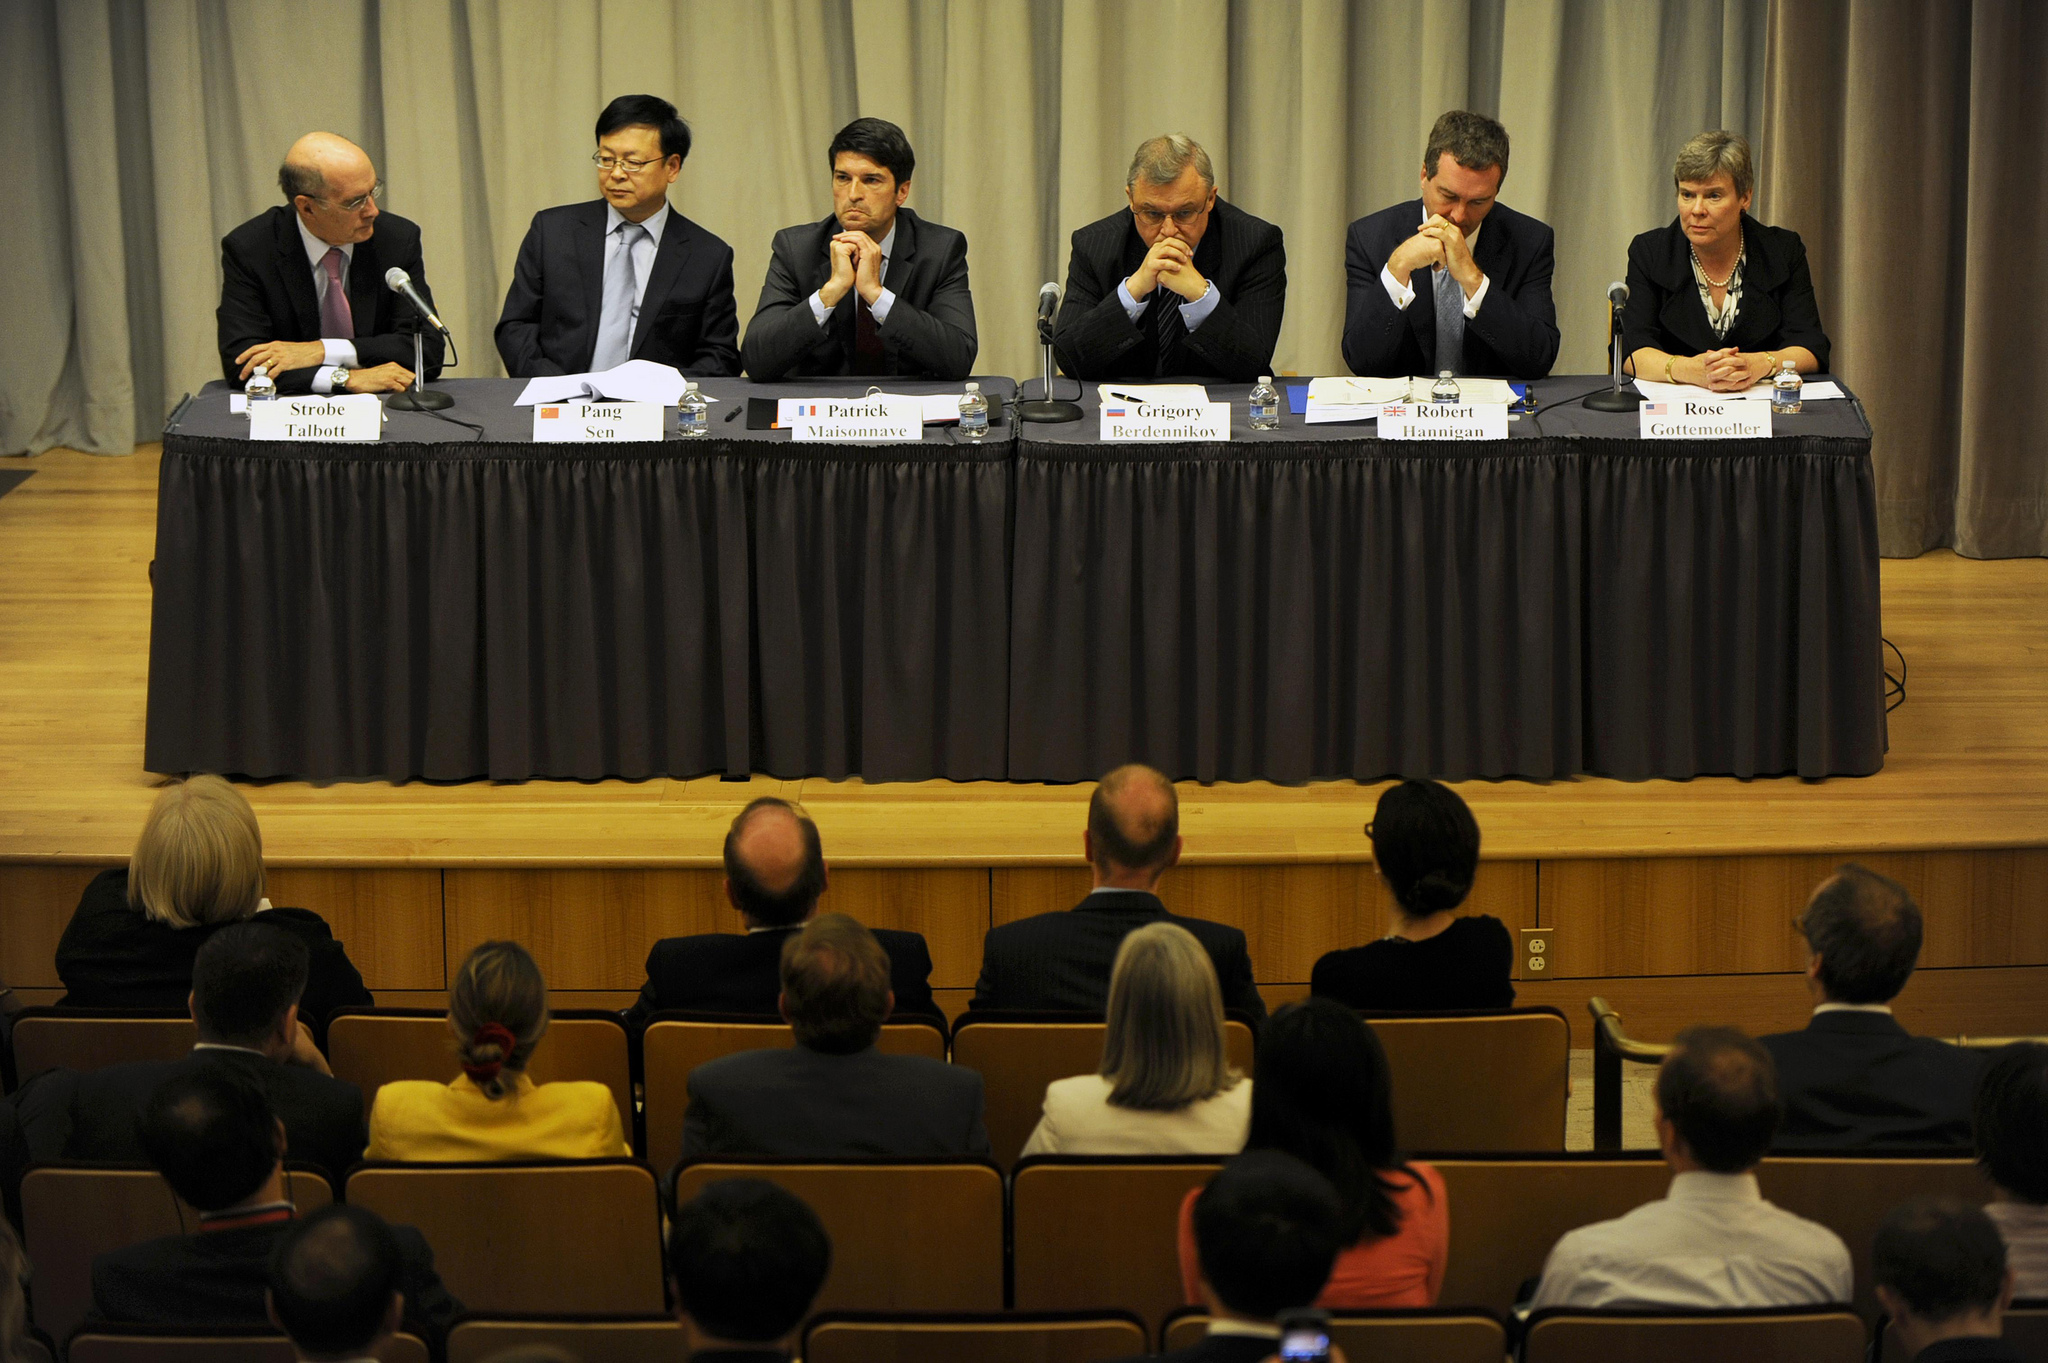 The heads of each P5 delegation discuss efforts to fulfill their NPT Article VI commitments, during a public event at the U.S. Department of State (June 27, 2012).